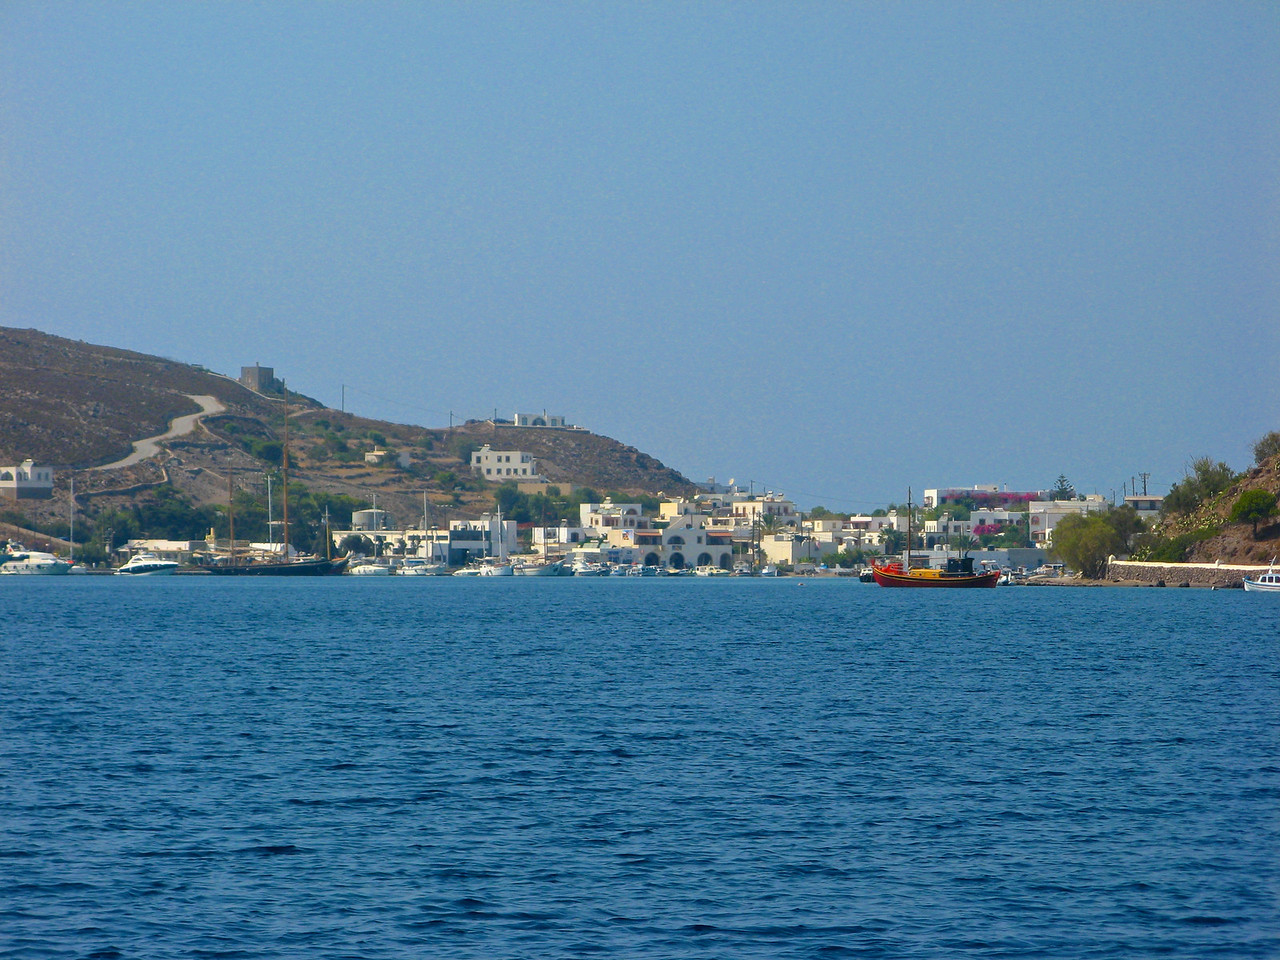 Here are some pictures as we pull into Skala on Patmos.